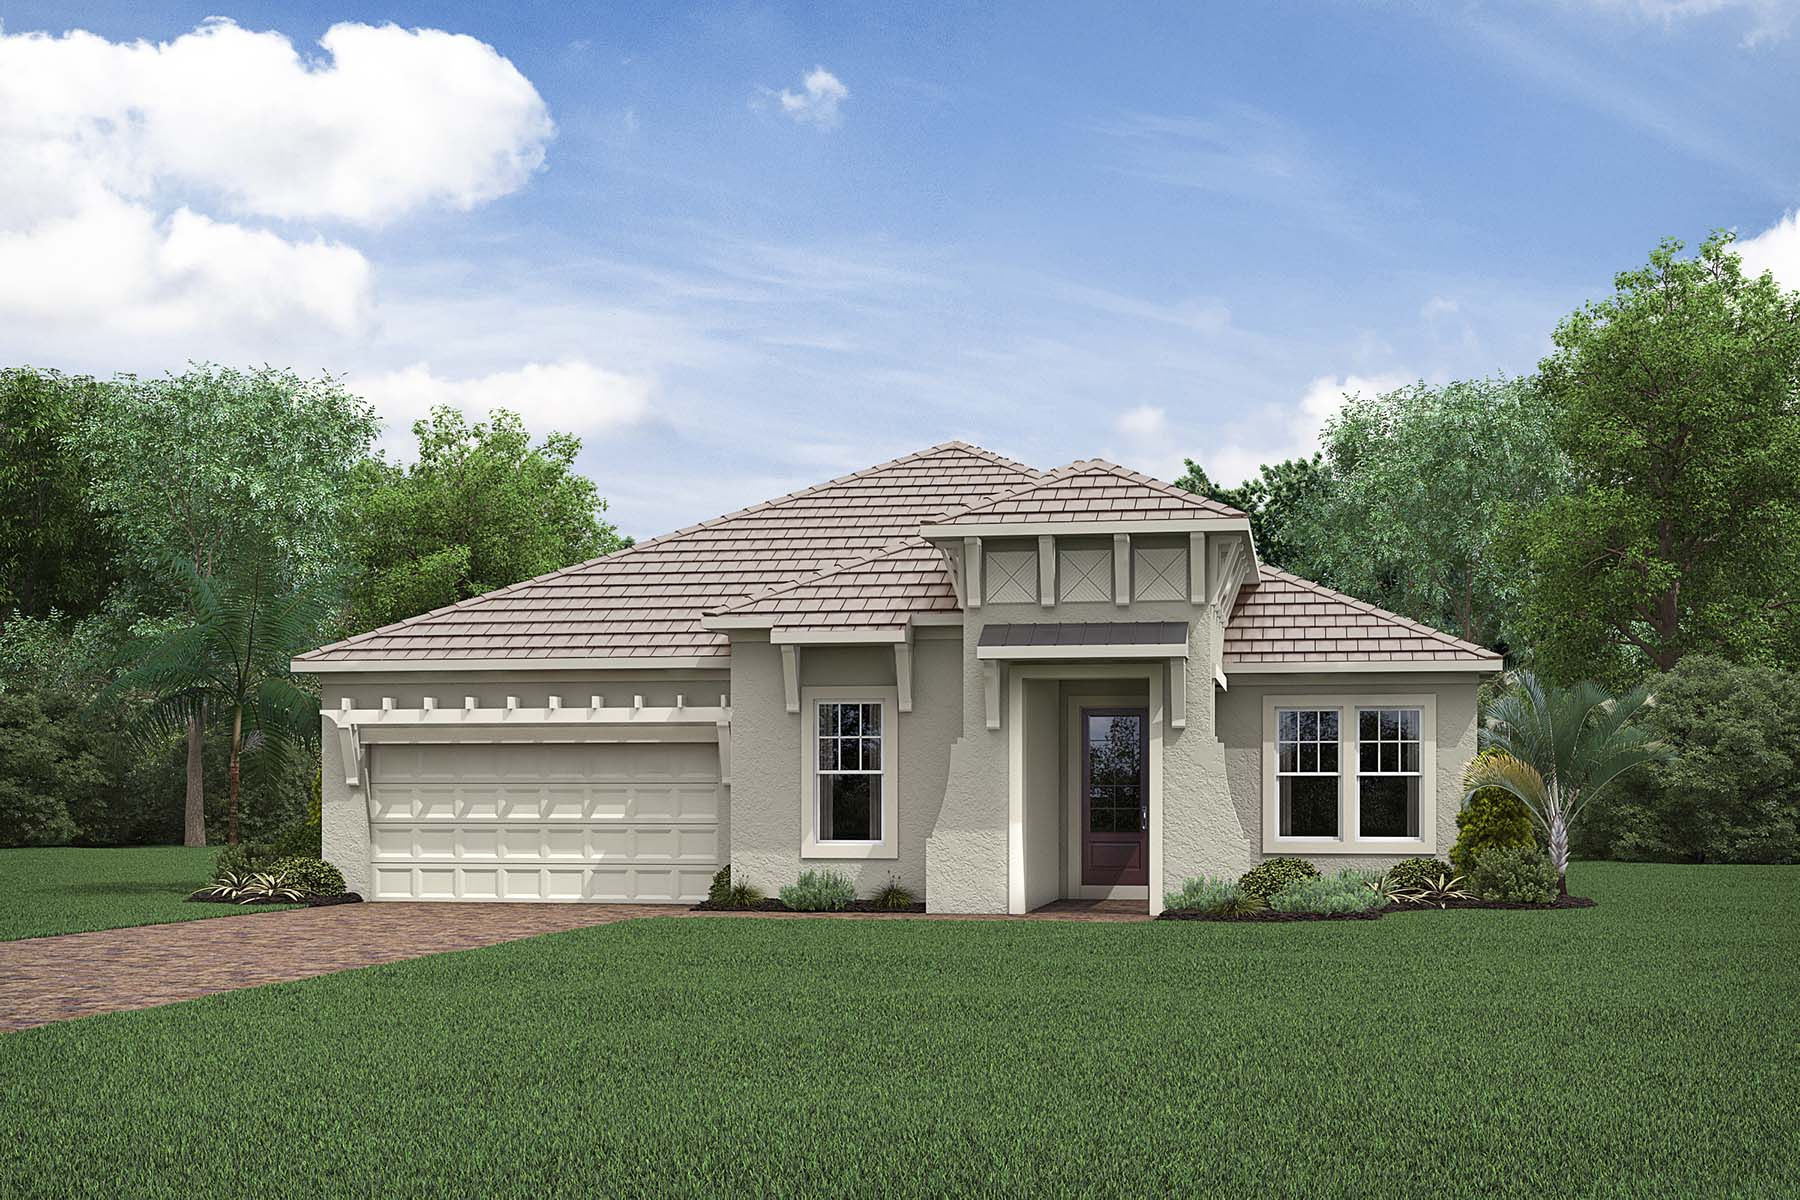 Pennant Plan Elevation Front at Compass Landing in Naples Florida by Mattamy Homes